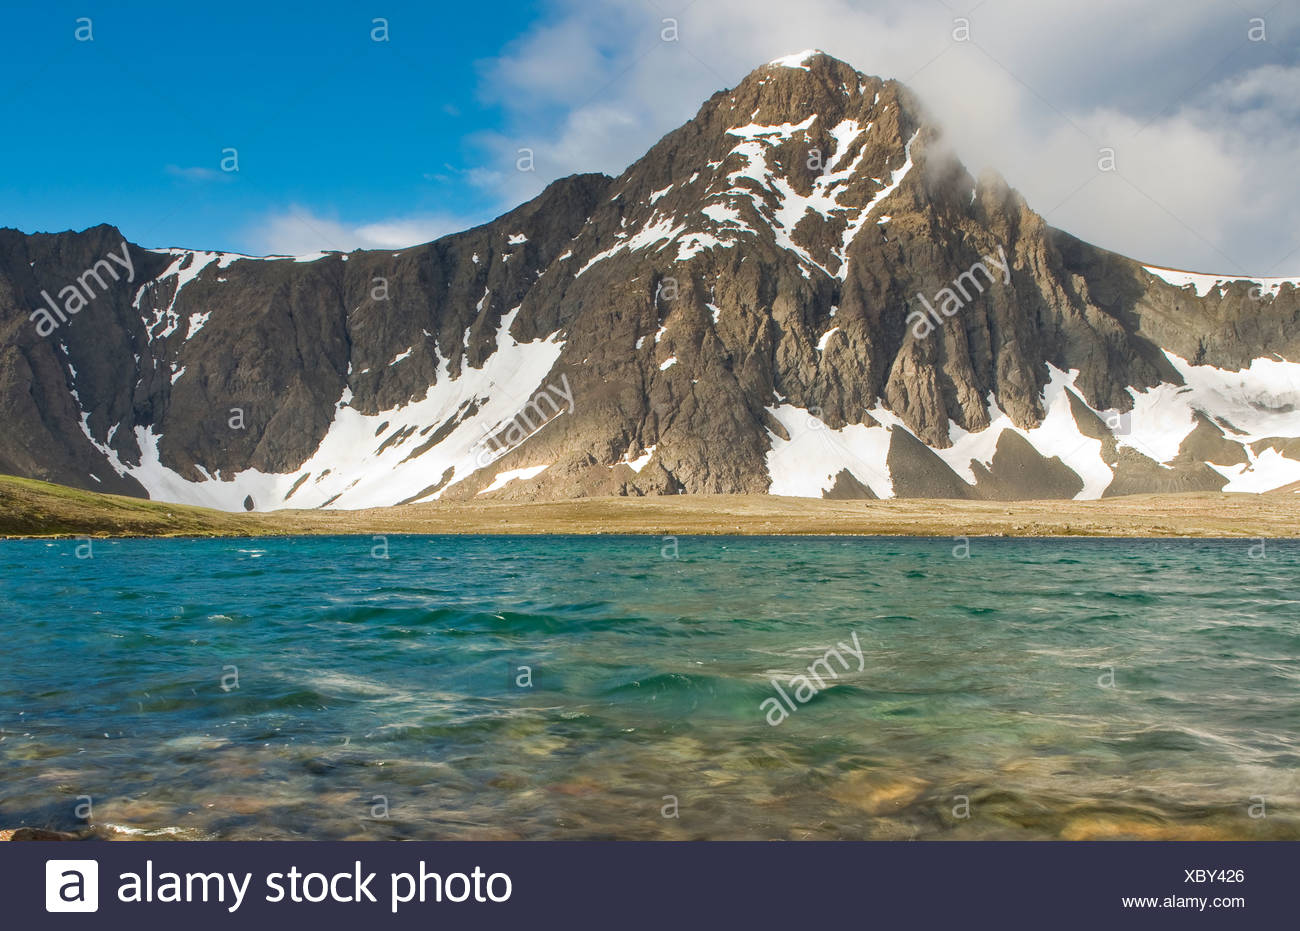 Scenic view of North Suicide Peak and Rabbit Lake, Chugach State Park, Southcentral Alaska, Summer - Stock Image